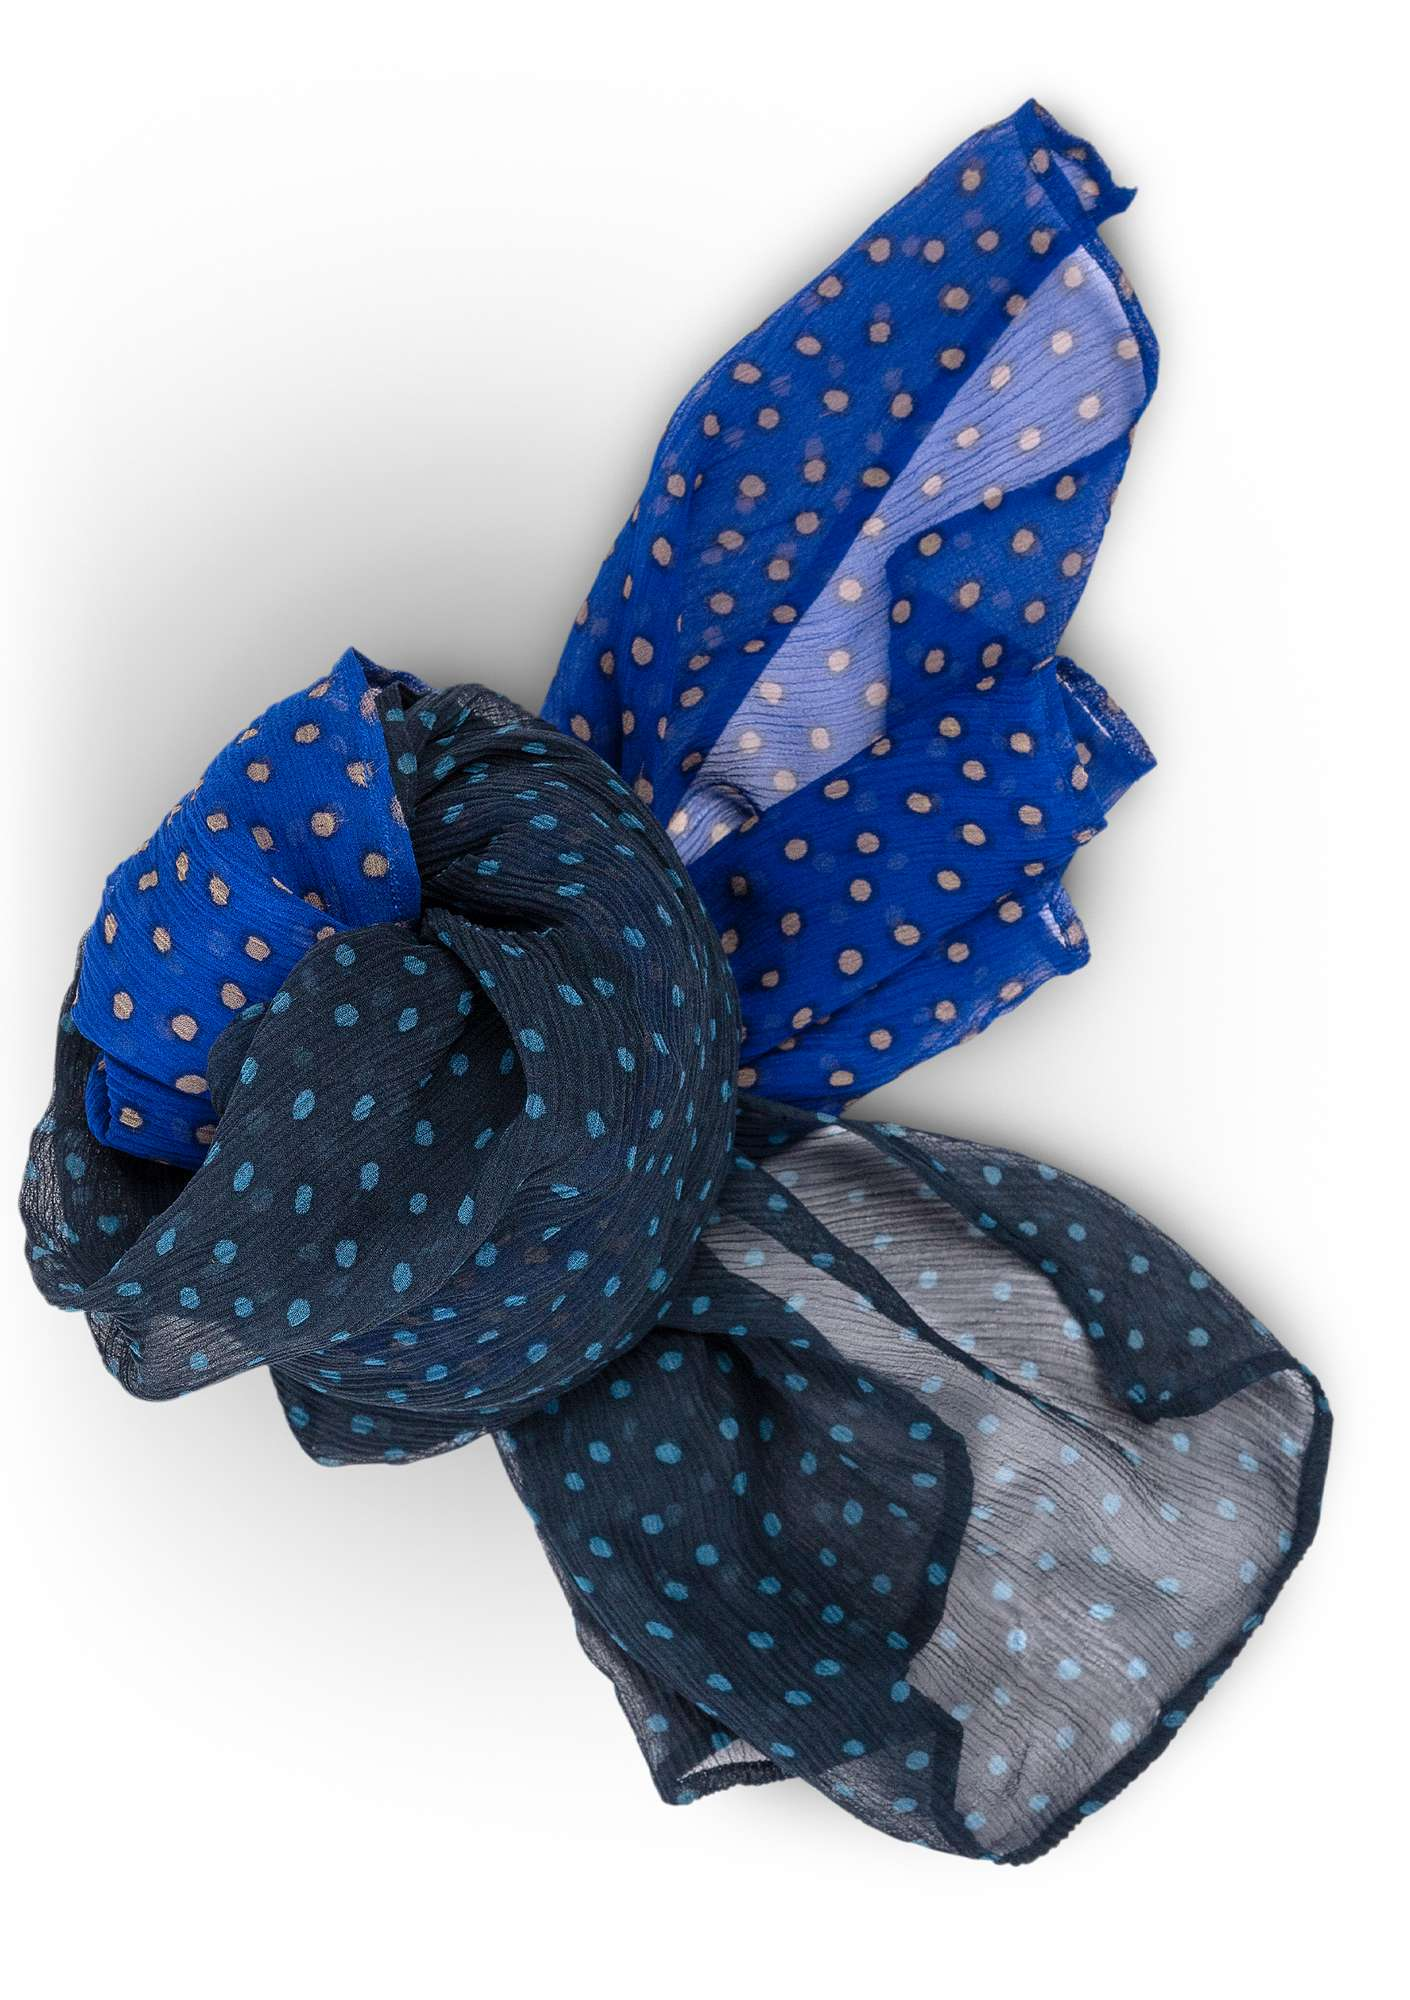 Silk chiffon dotted shawl klein blue/ink blue